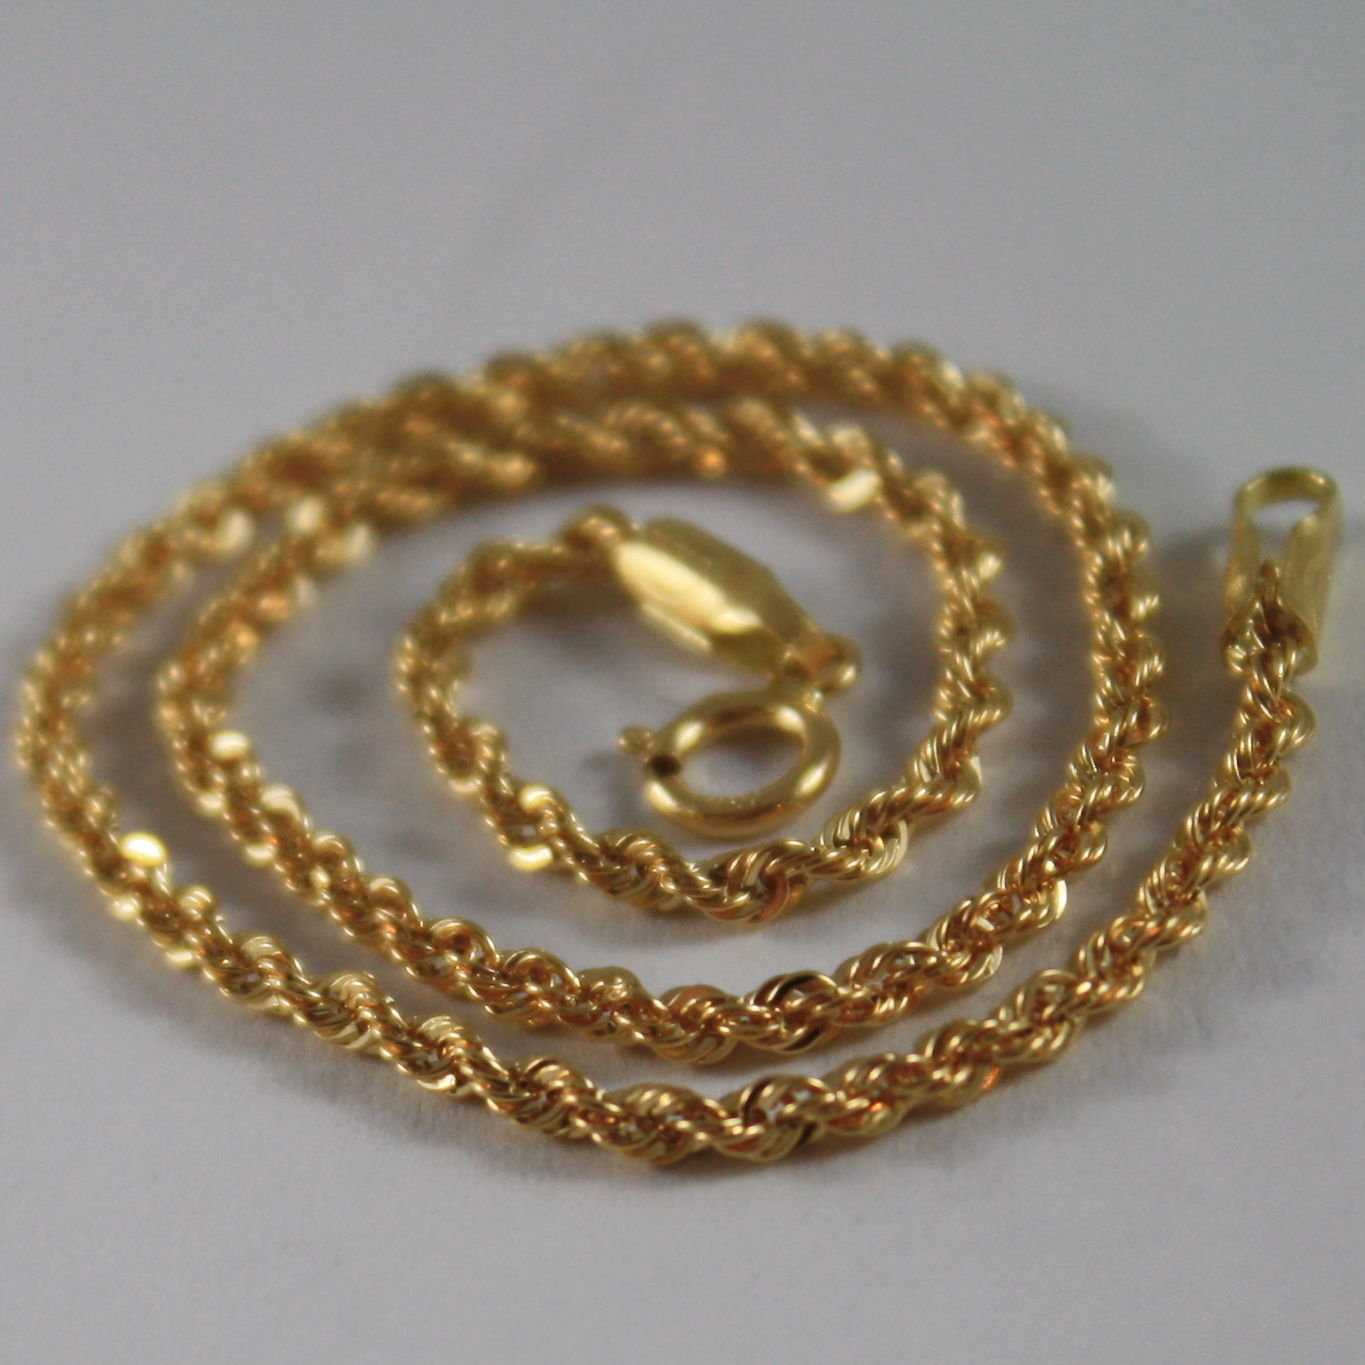 18K SOLID YELLOW GOLD BRACELET, BRAID ROPE 7.50 INCH LONG, MADE IN ITALY